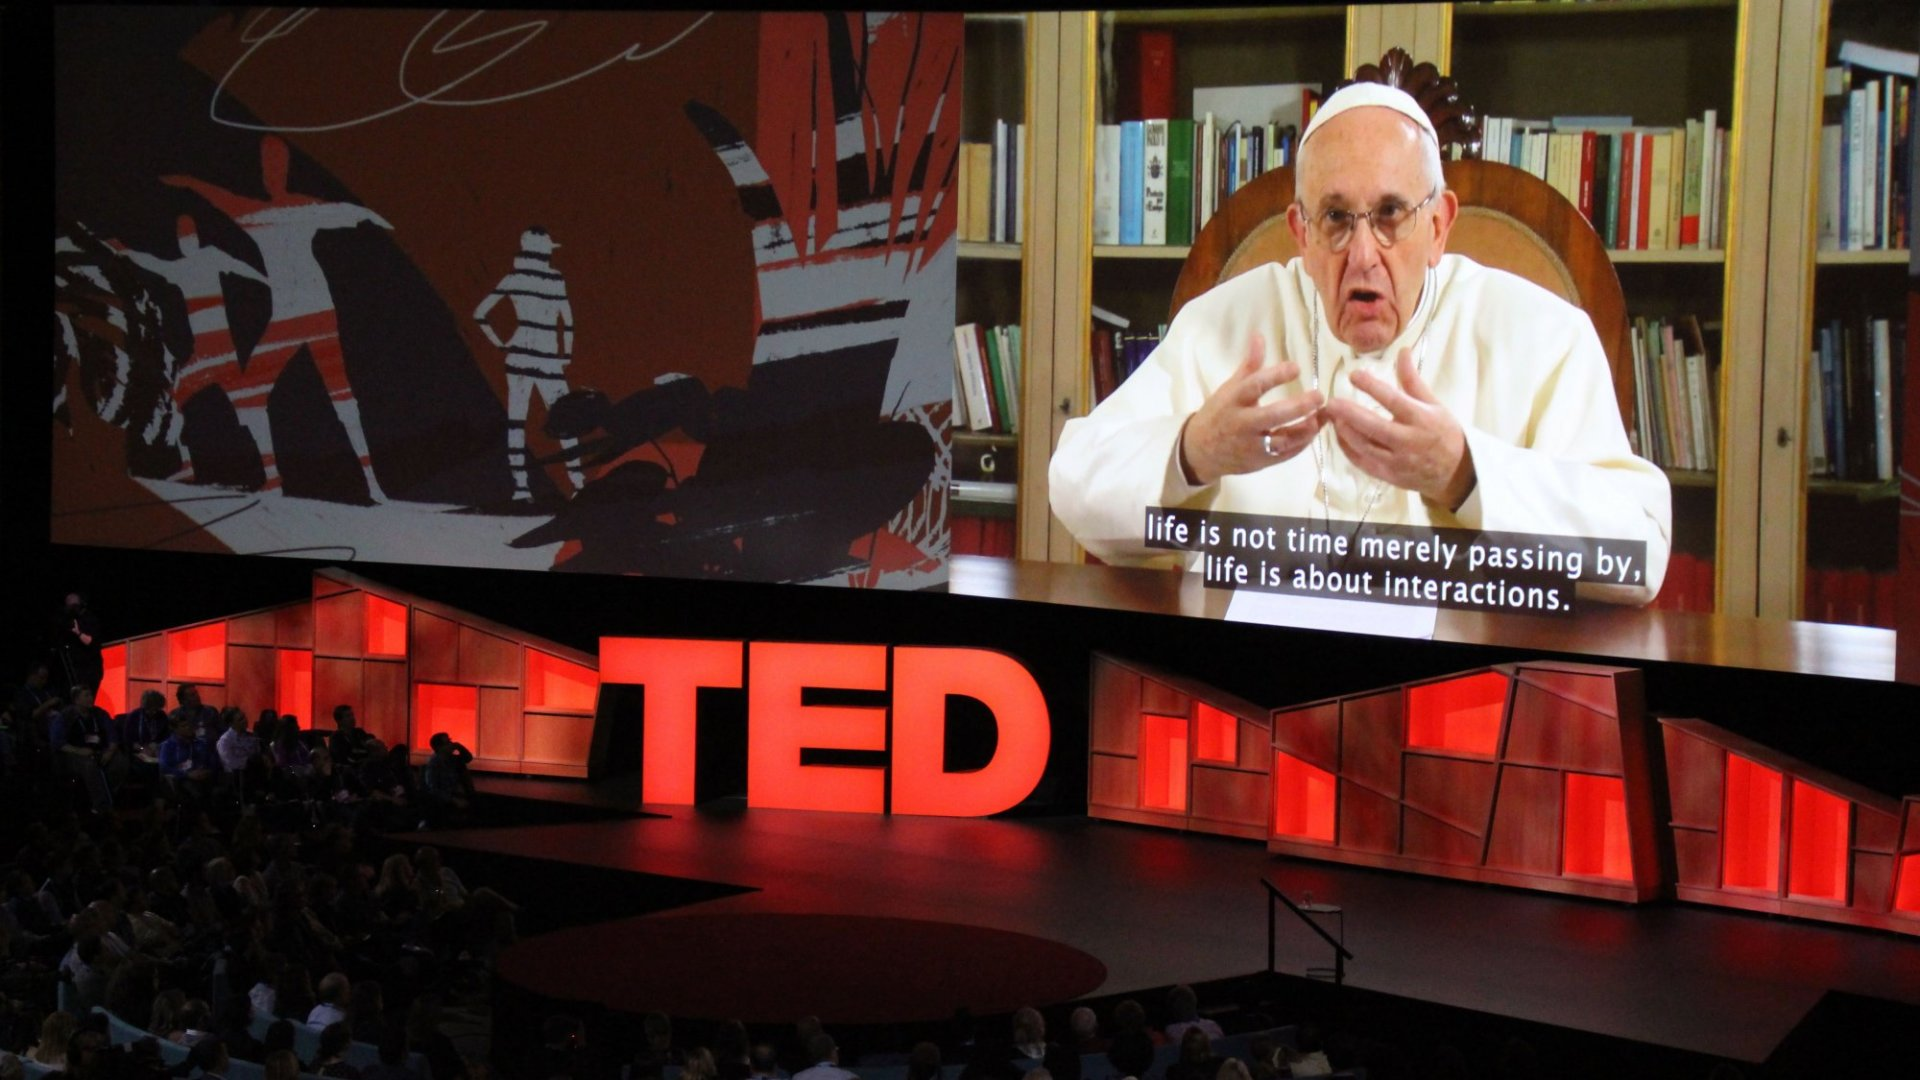 The Pope Just Gave a Surprise TED Talk, Nailing the Secret to Remarkable Leadership